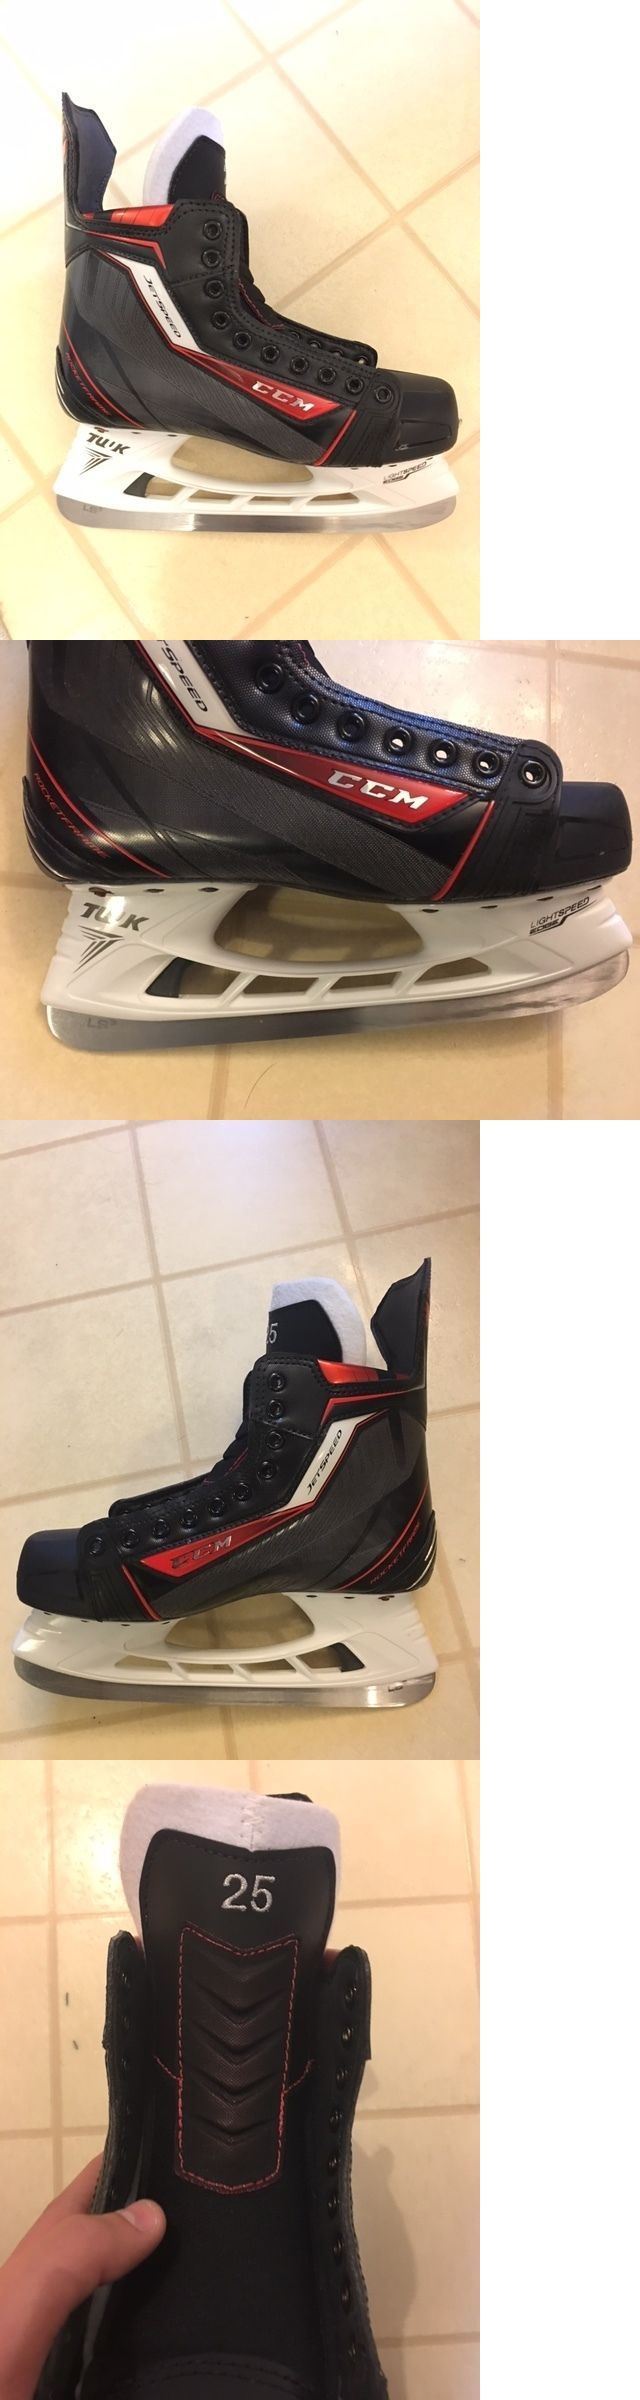 Ice Hockey-Adult 20858: Ccm Sr. Pro Jetspeed Hockey Skates Brand New Size 8 Bauer Tuuk Blade -> BUY IT NOW ONLY: $500 on eBay!